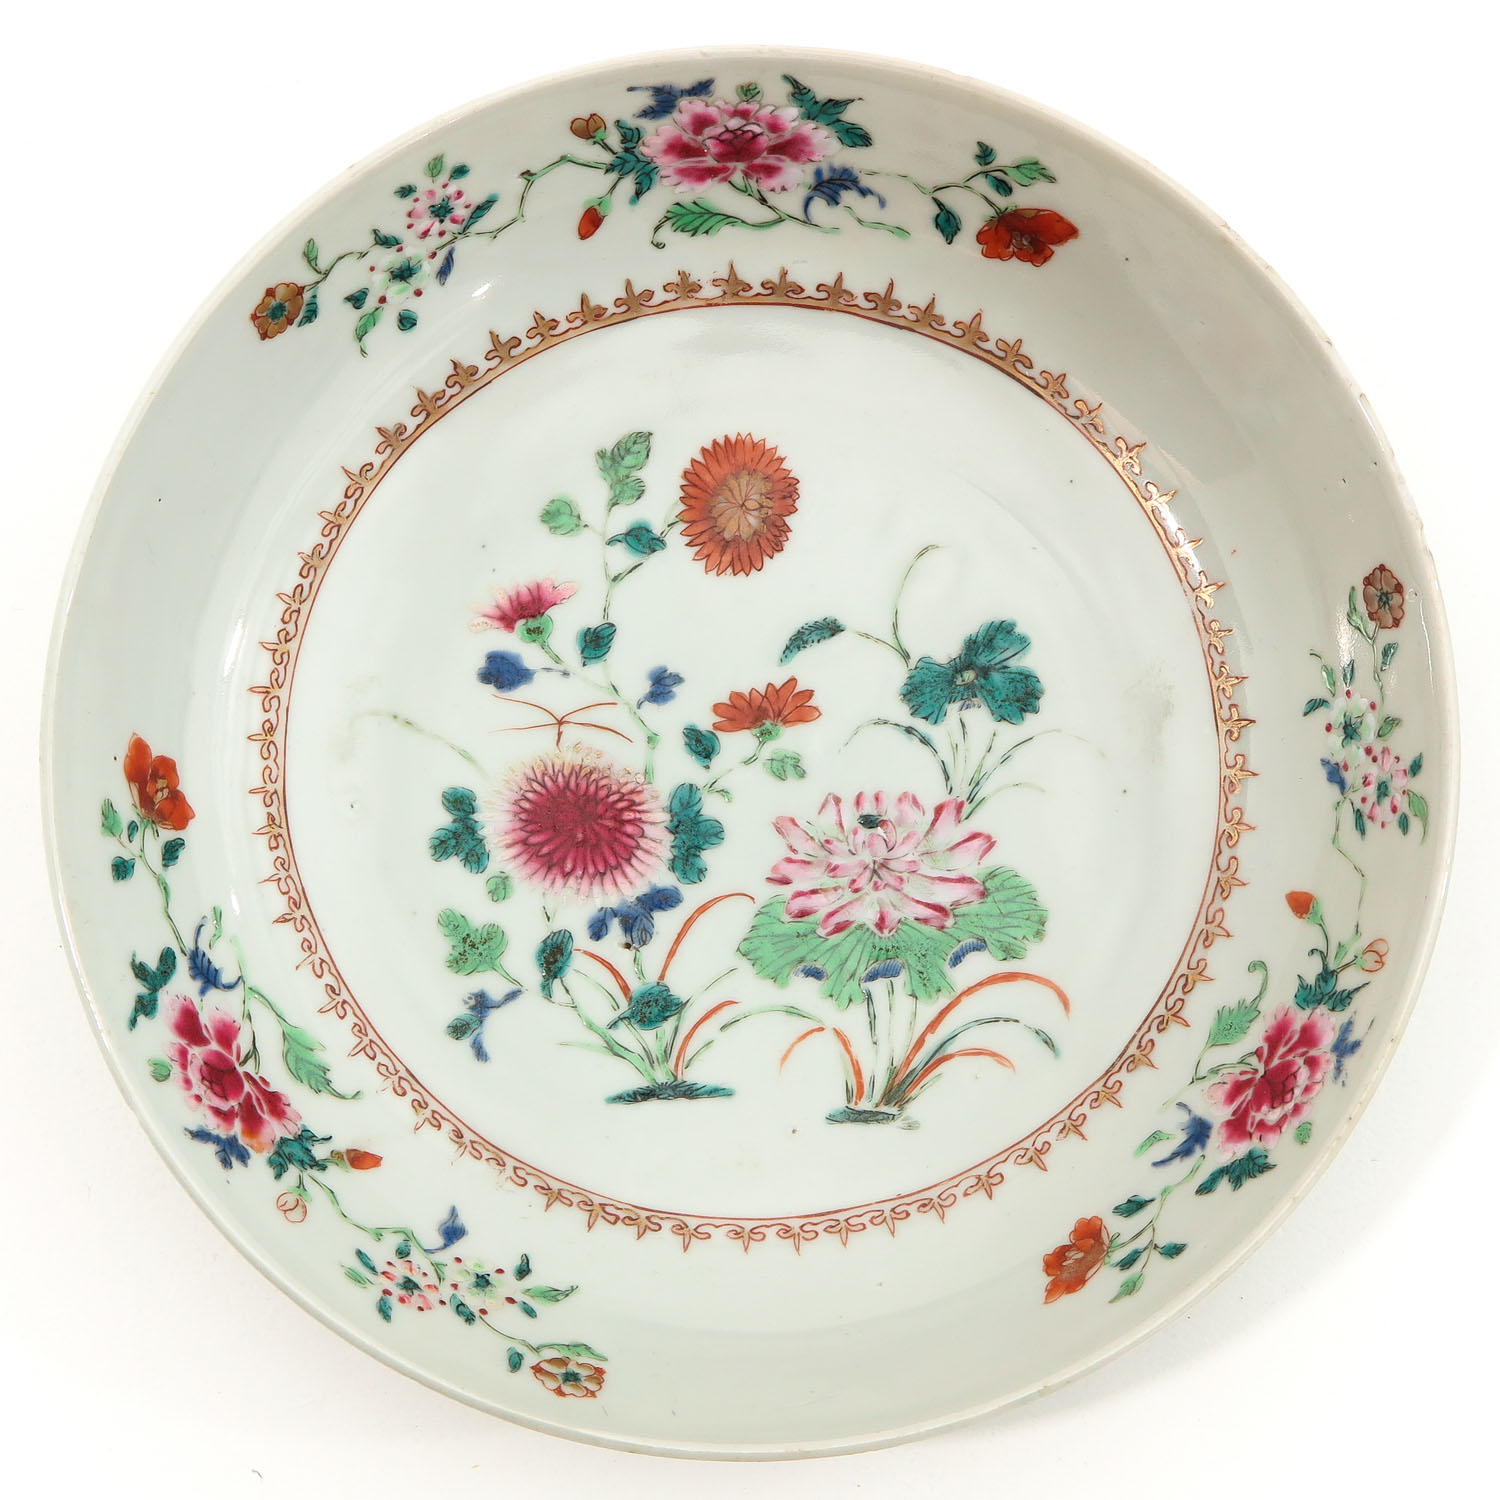 A Collection of 3 Famille Rose Plates - Image 3 of 10